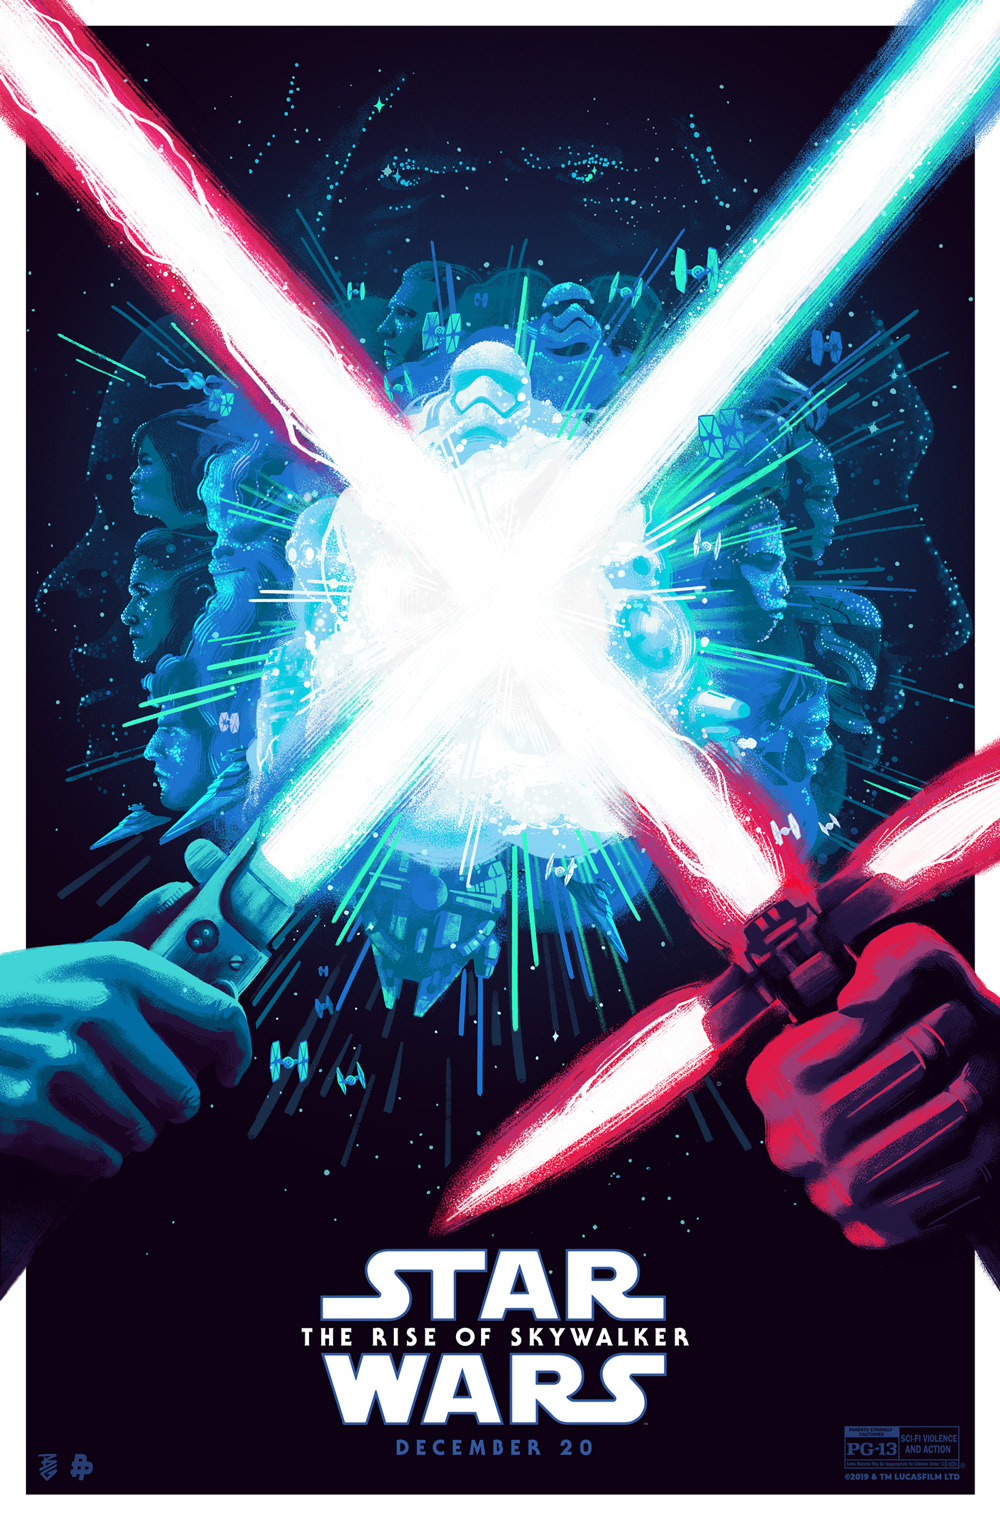 I M Just An Empty Void Waiting To Be Filled Star Wars Uk Star Wars Watch Star Wars Poster